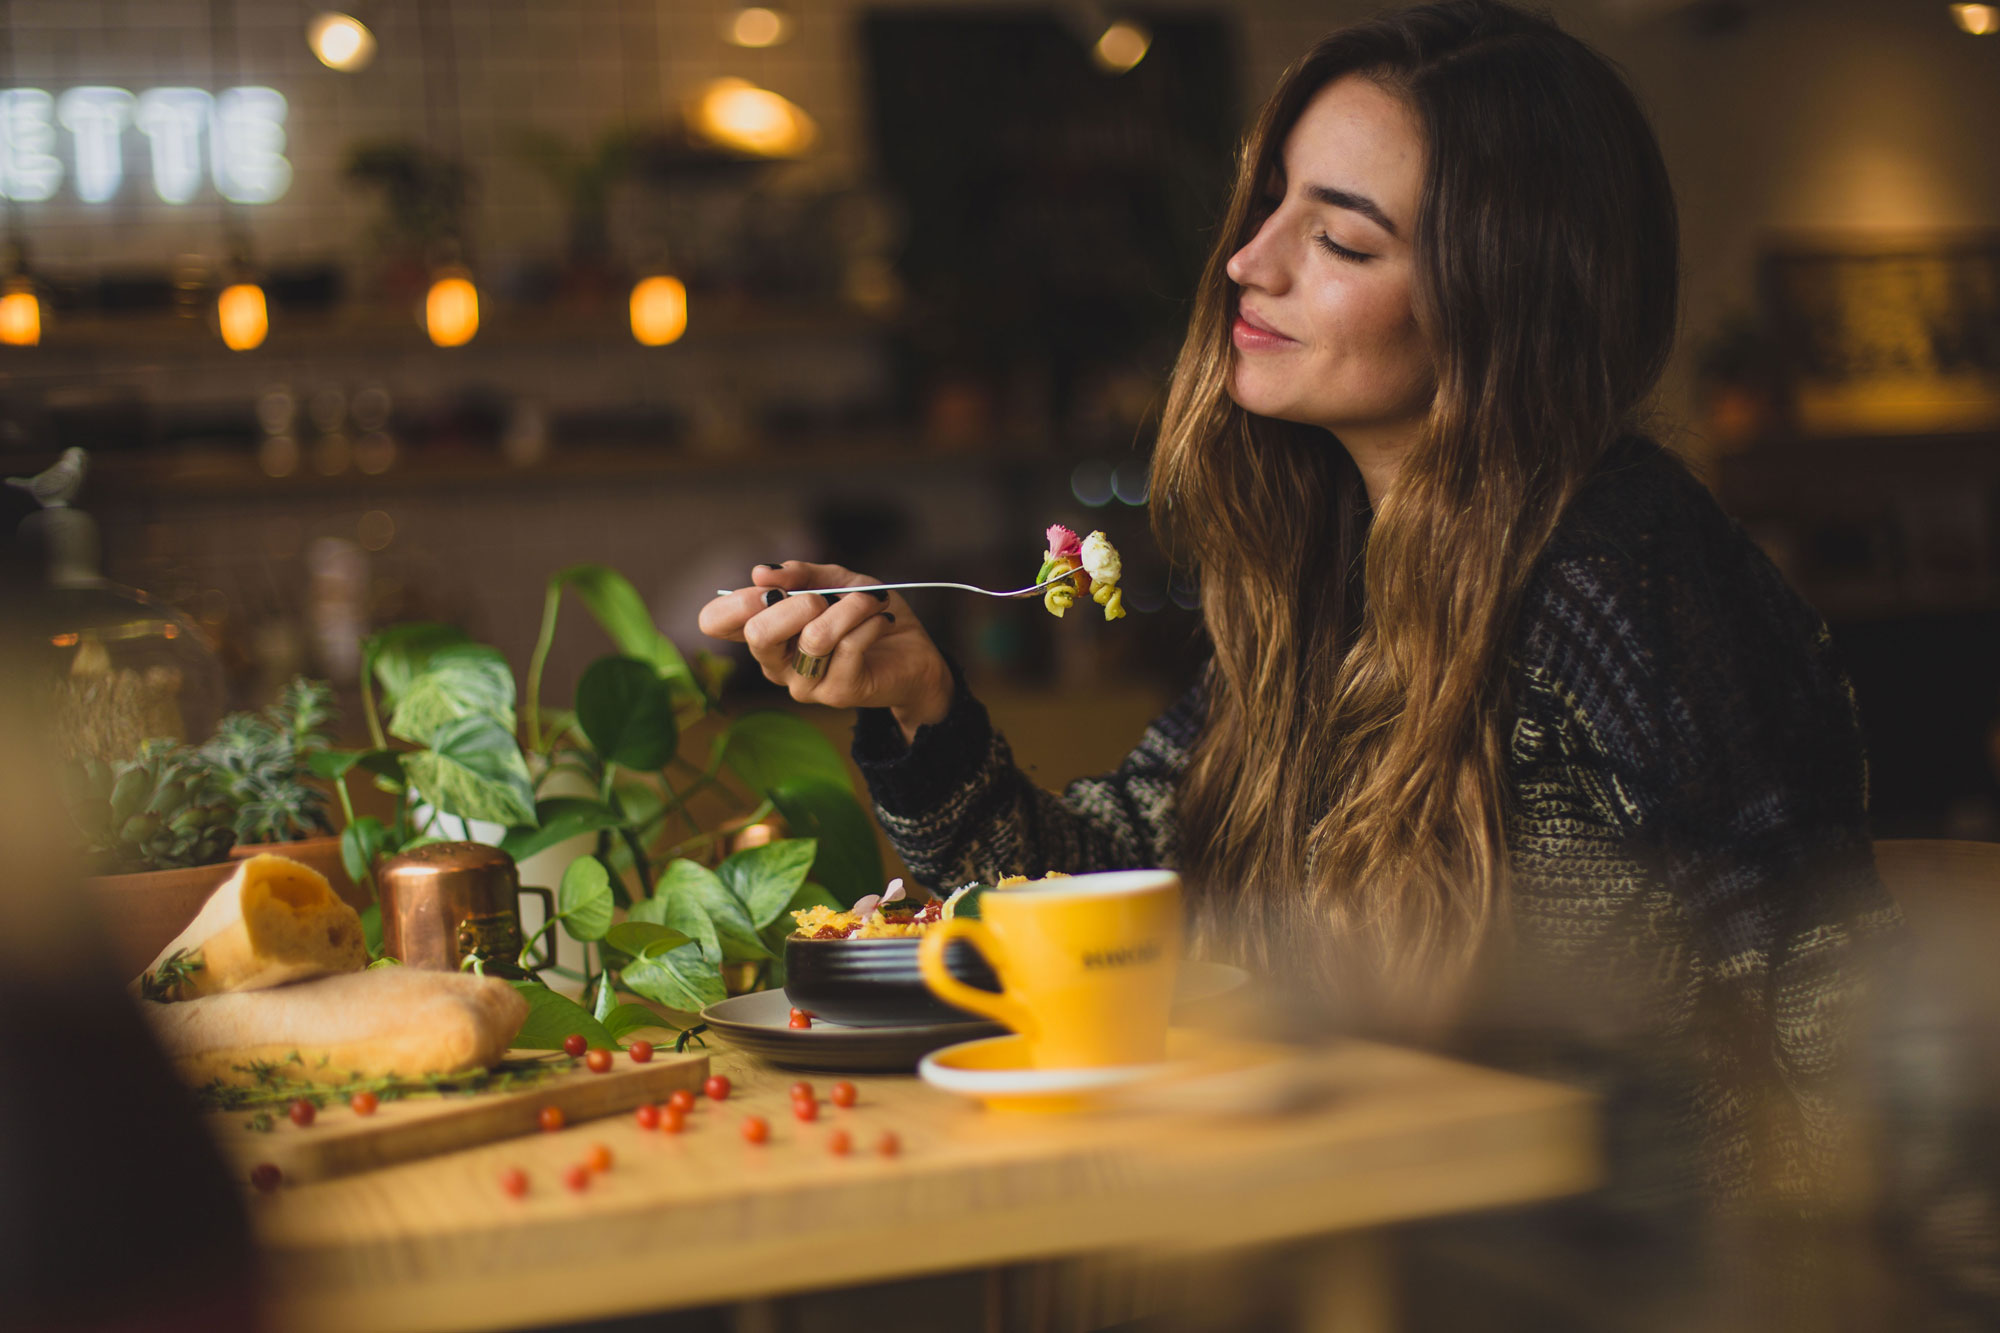 What Does It Mean To Eat With Intention?